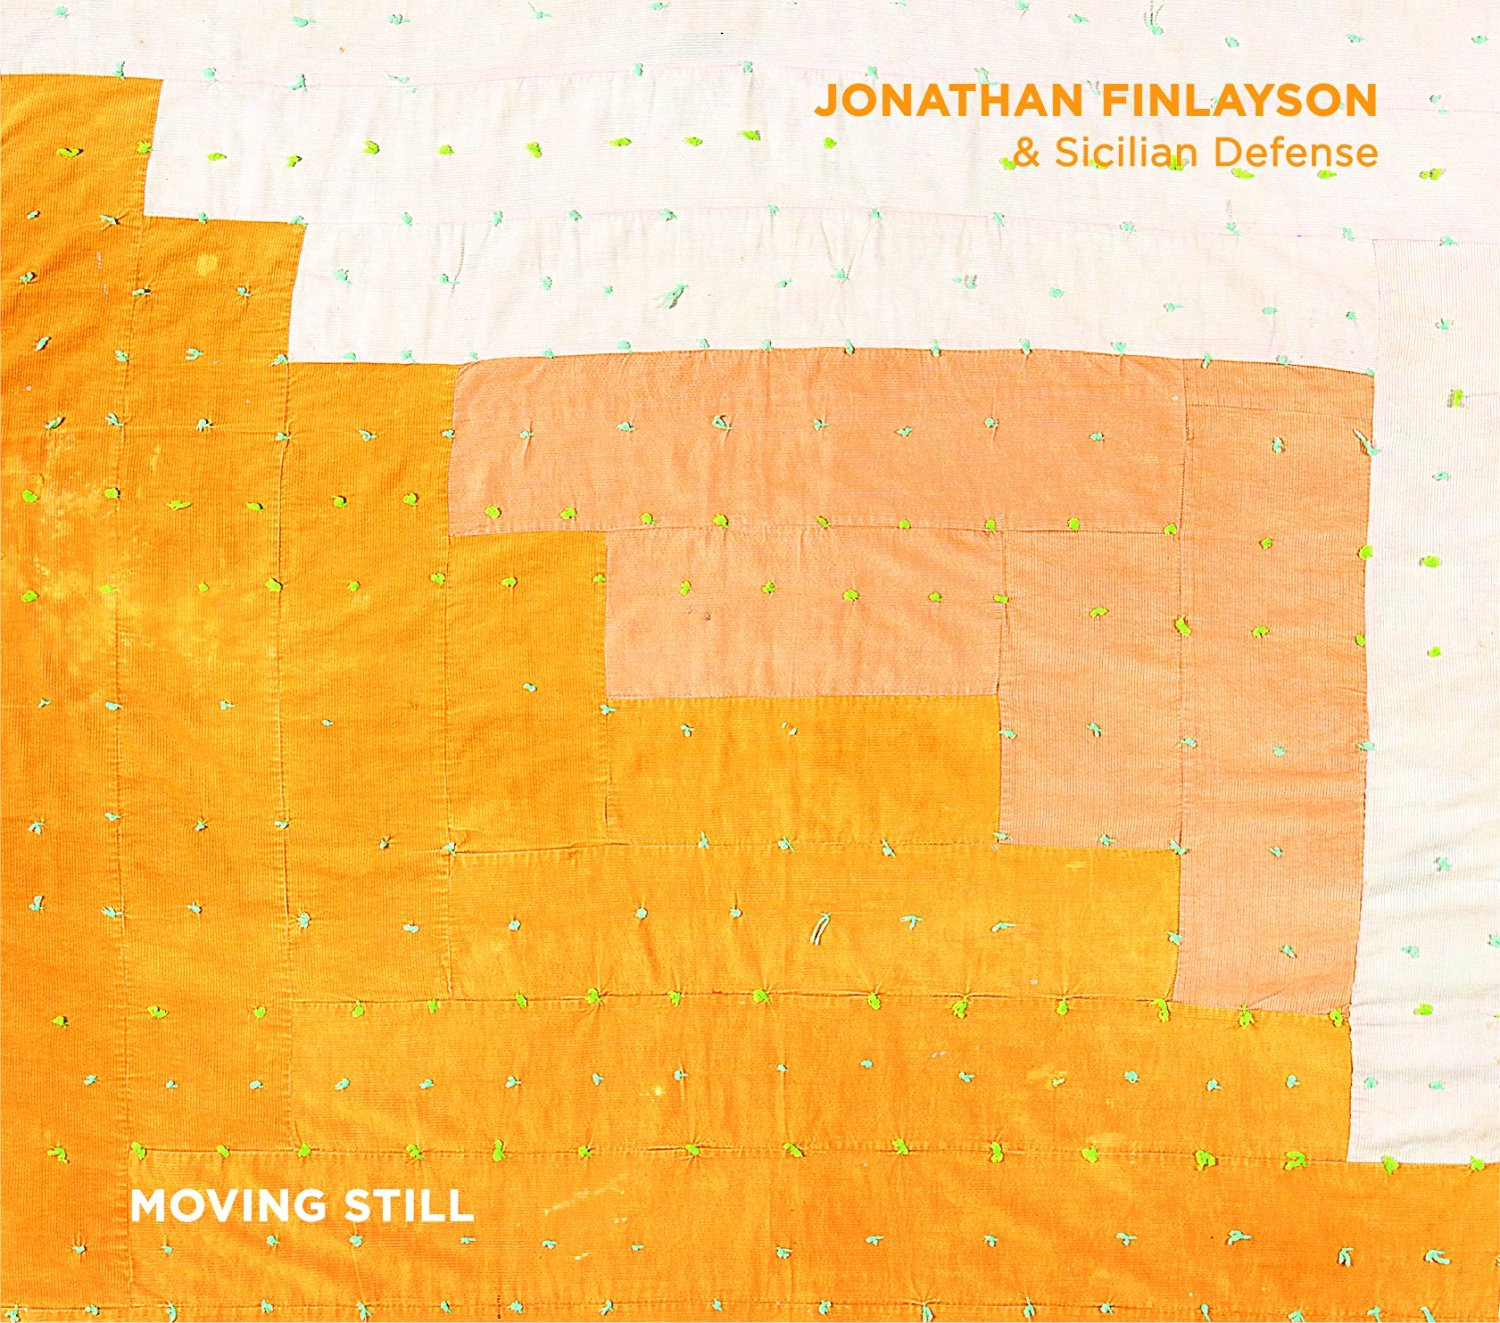 Jonathan Finlayson and Sicilian Defense - Moving Still